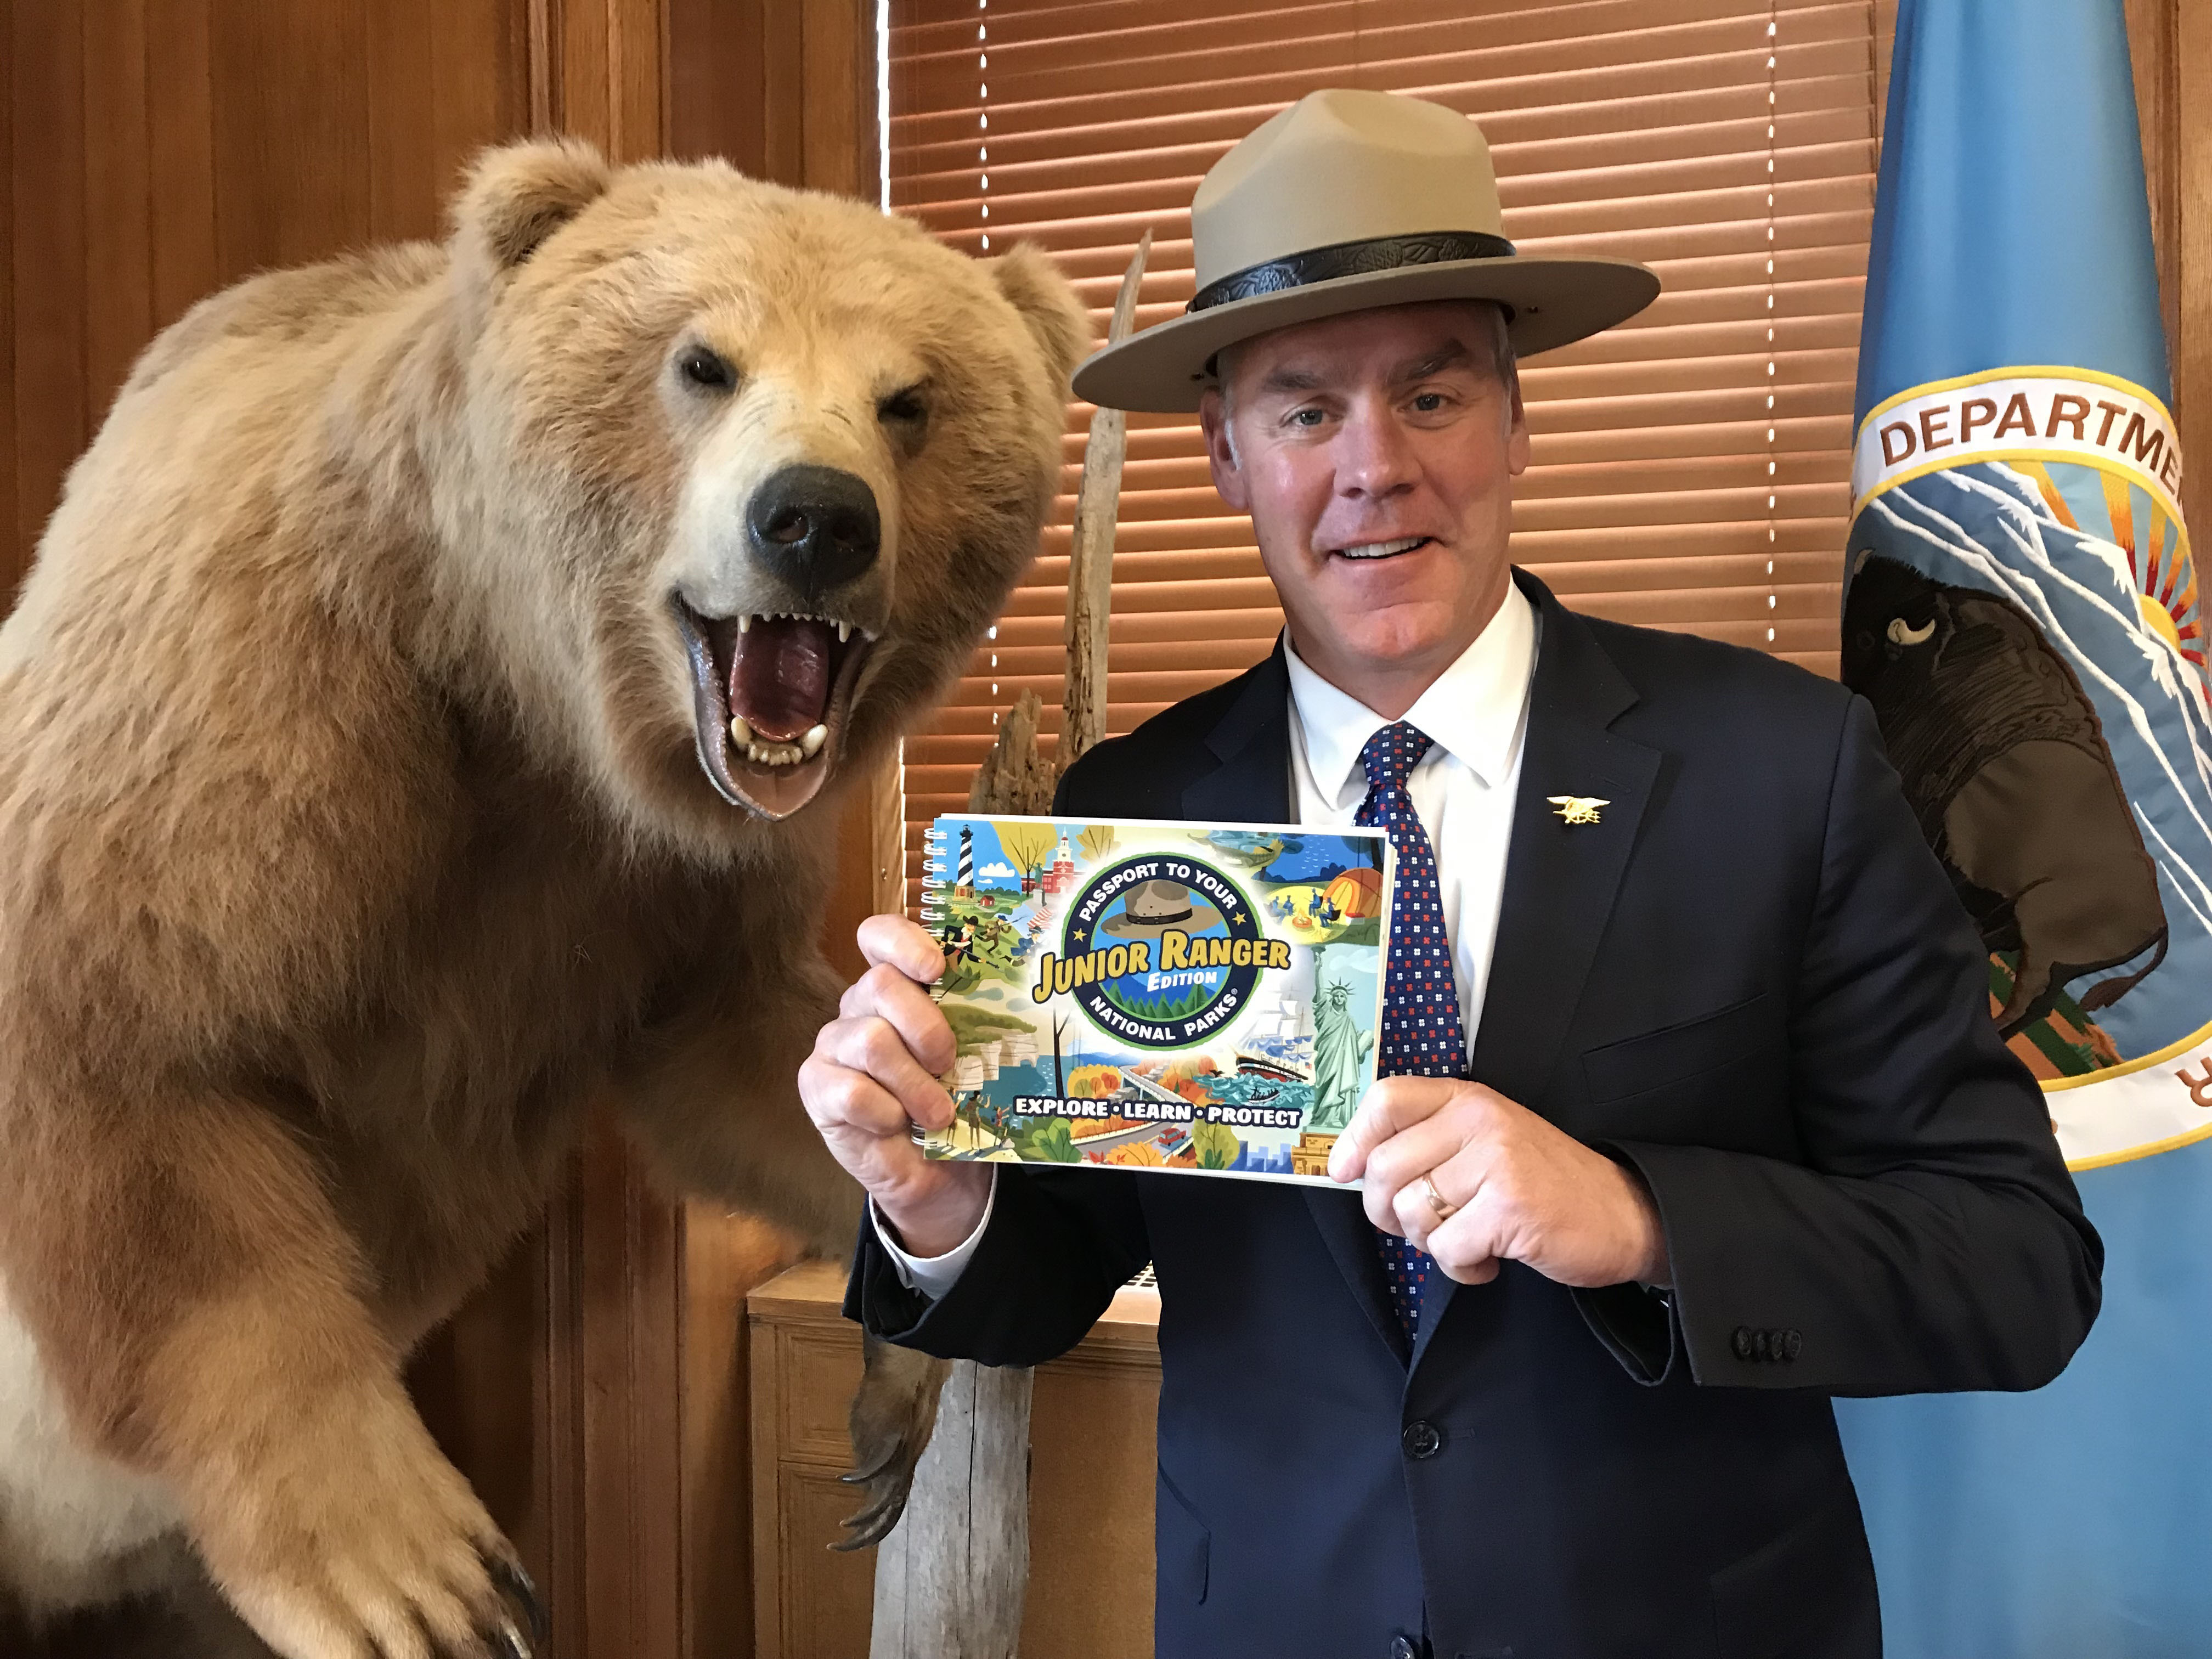 U.S. Secretary of the Interior, Ryan Zinke holding the new Junior Ranger Passport book while standing next to a stuffed bear.